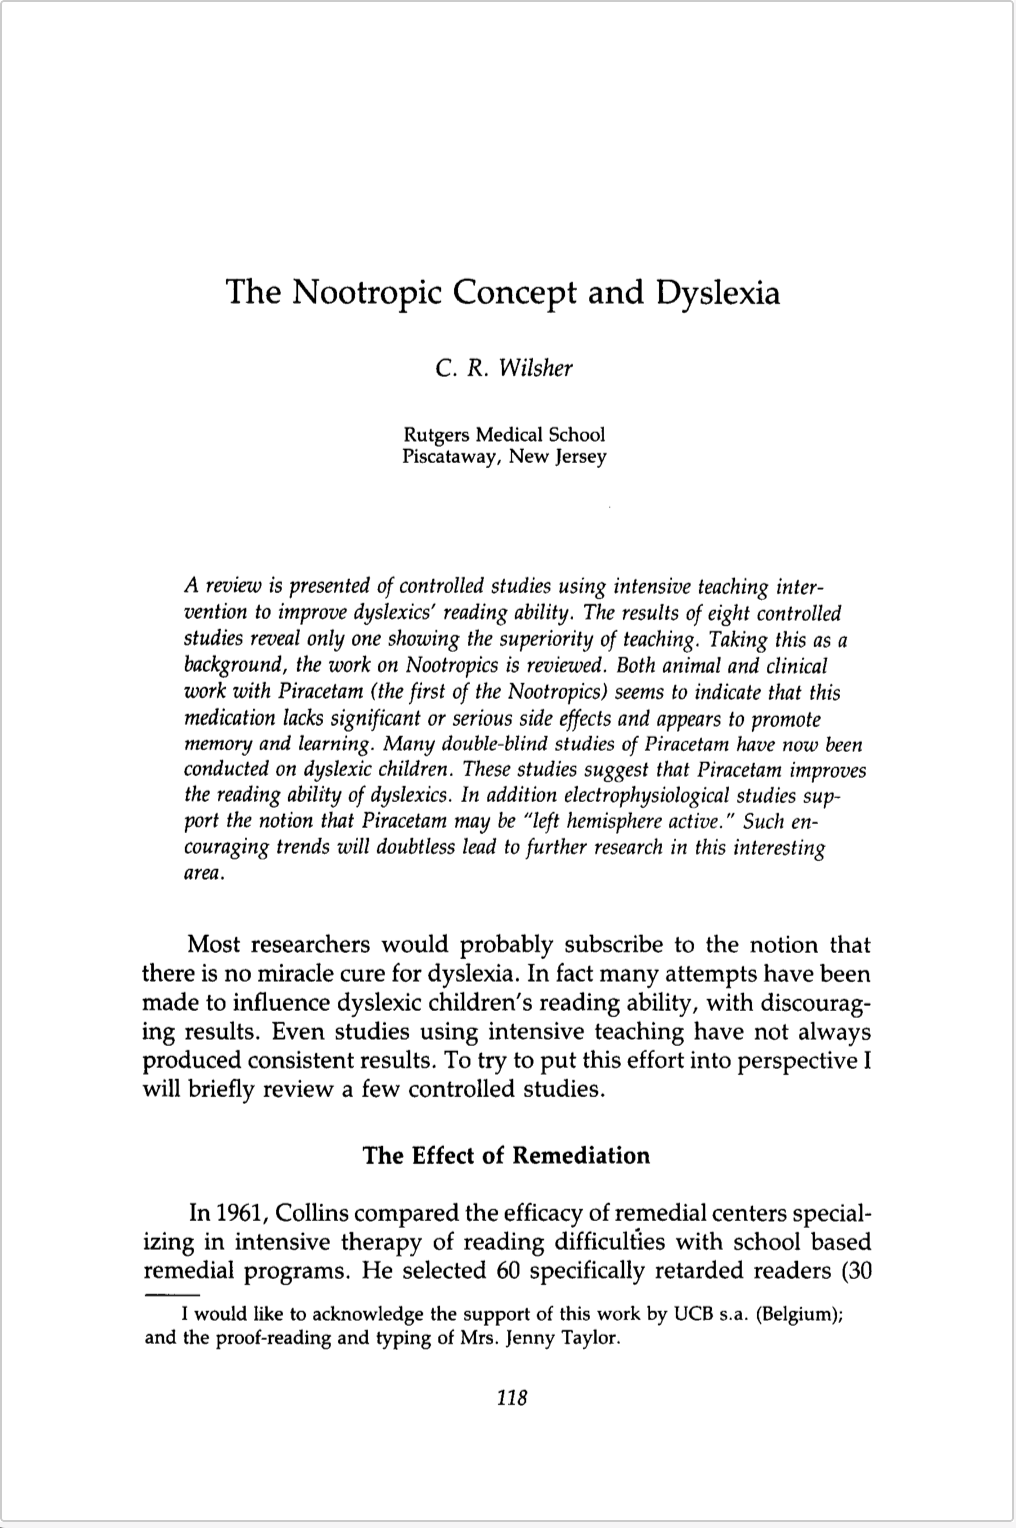 The Nootropic Concept And Dyslexia